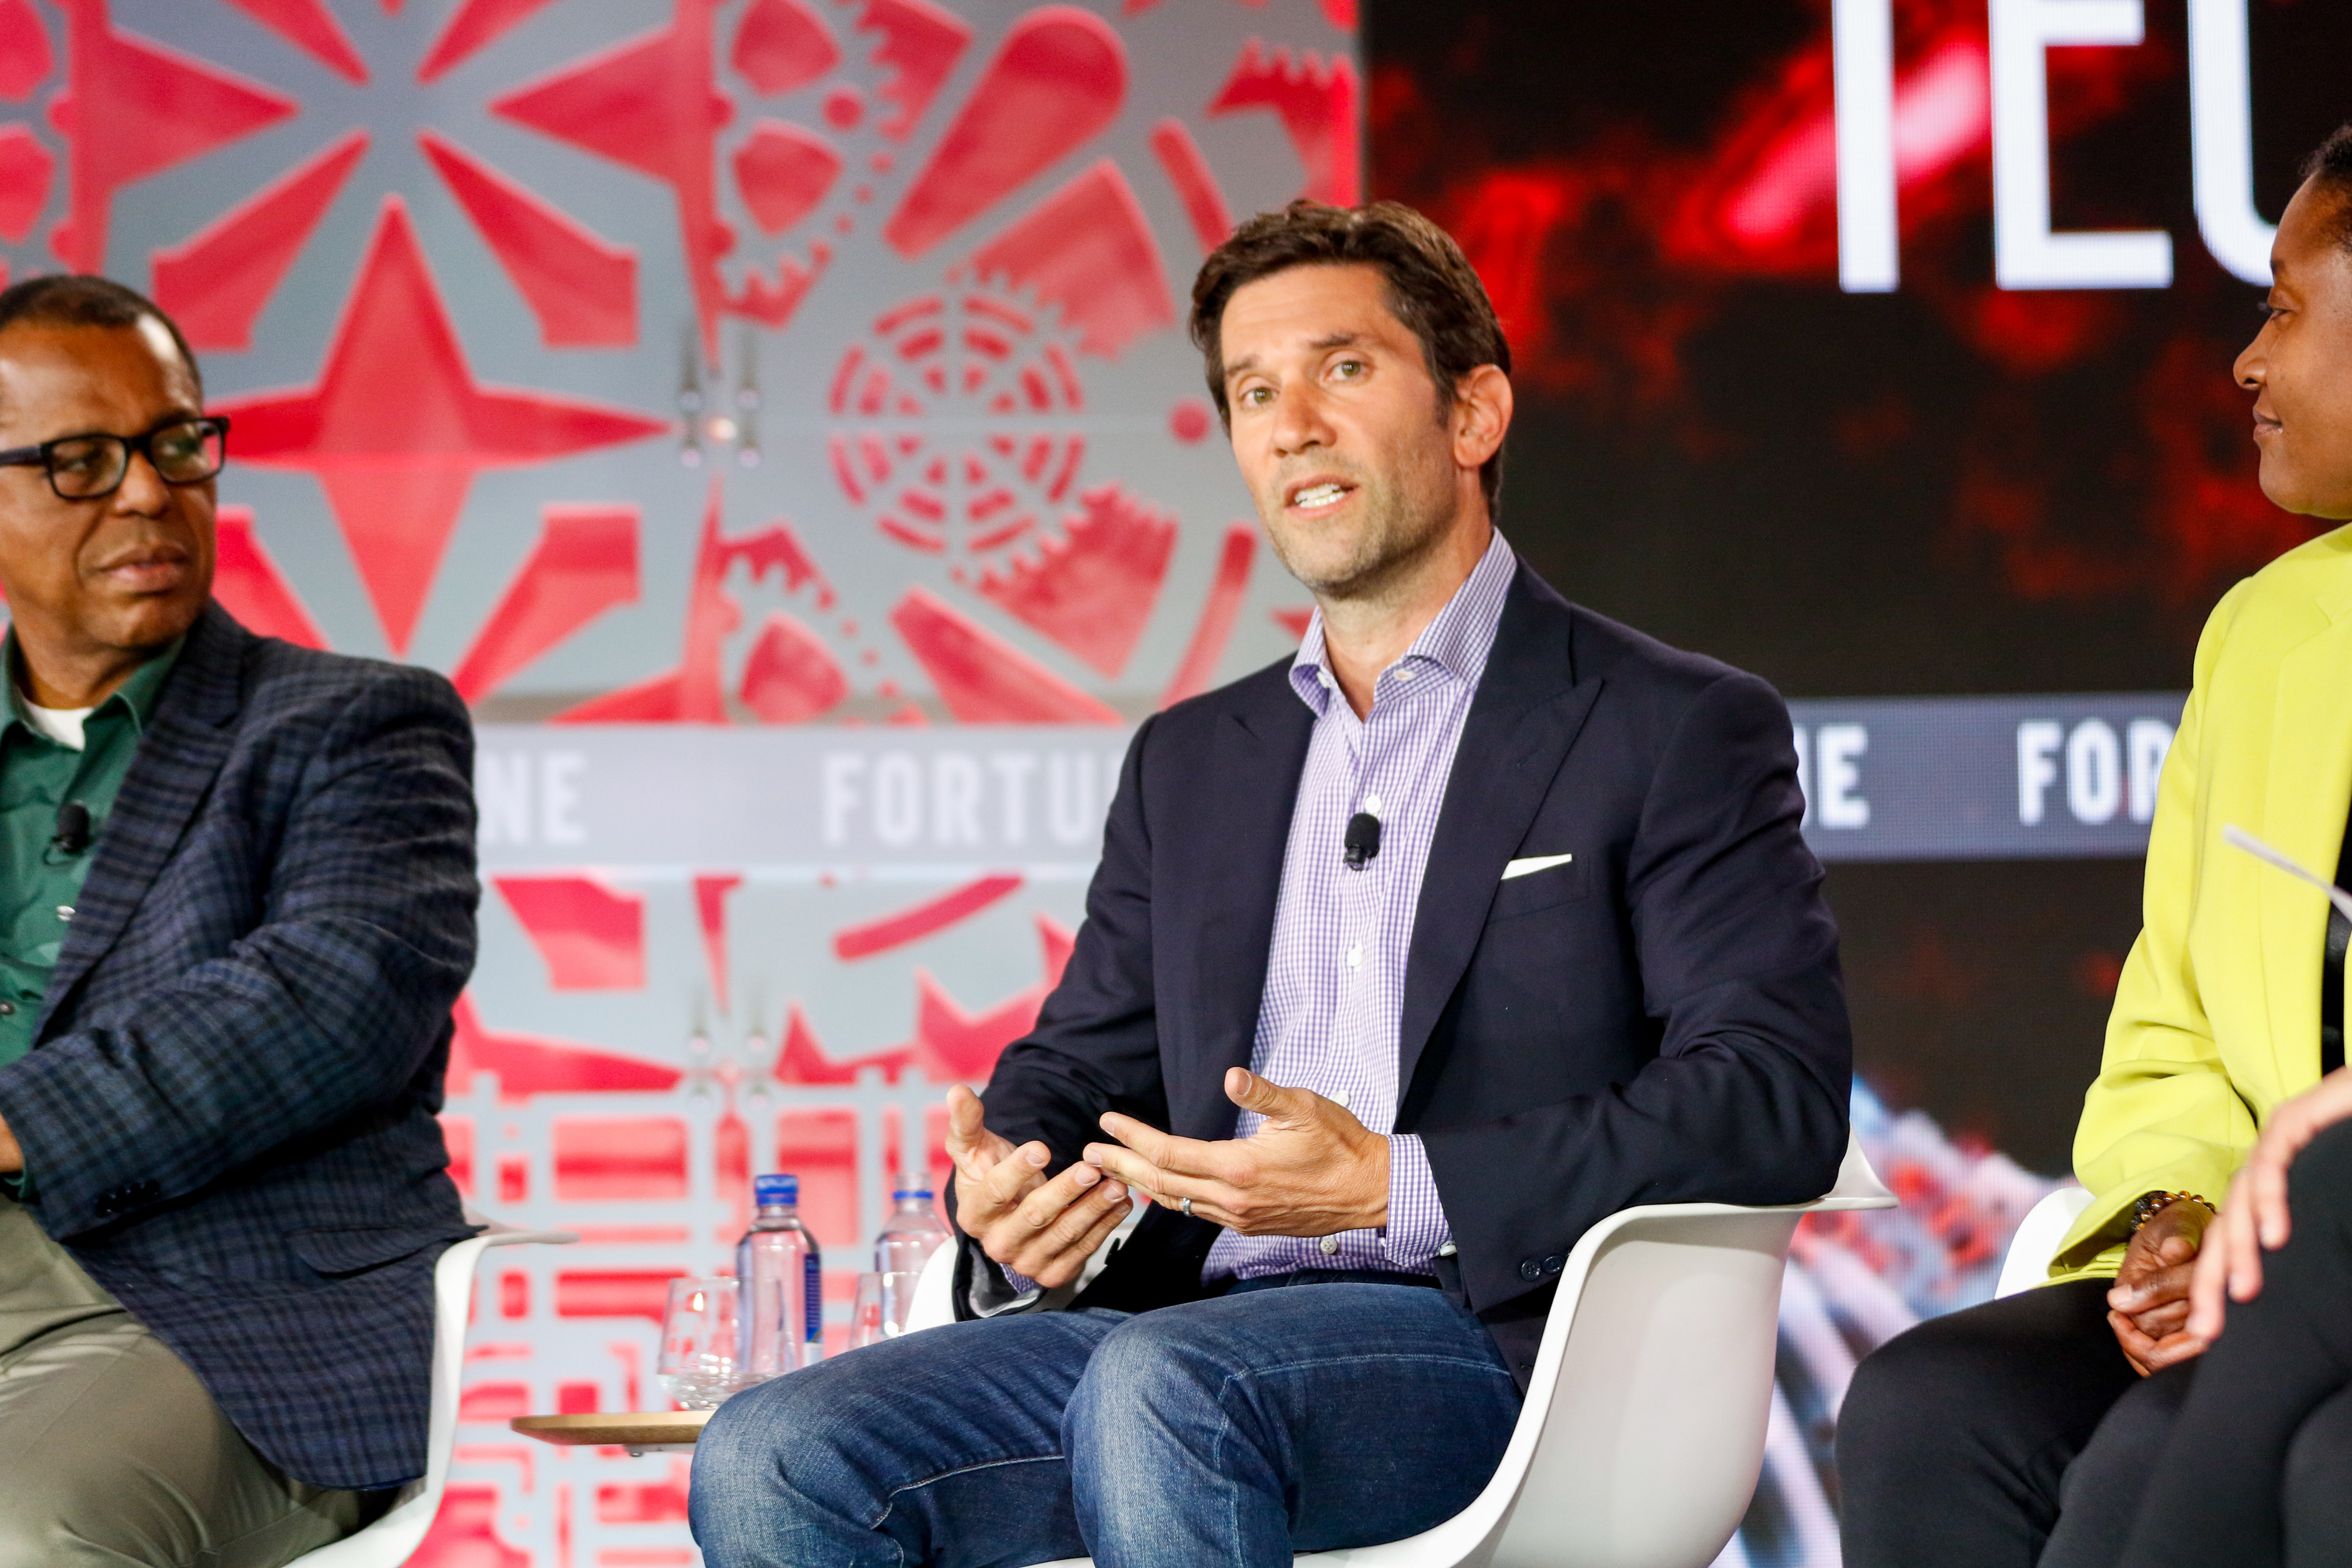 David Richter, chief business officer of electric scooter startup Lime, chats about the future of mobility alongside Ford chief technology officer Ken Washington and Zoox CEO Aicha Evans a t Fortune's 2019 Brainstorm Tech conference.